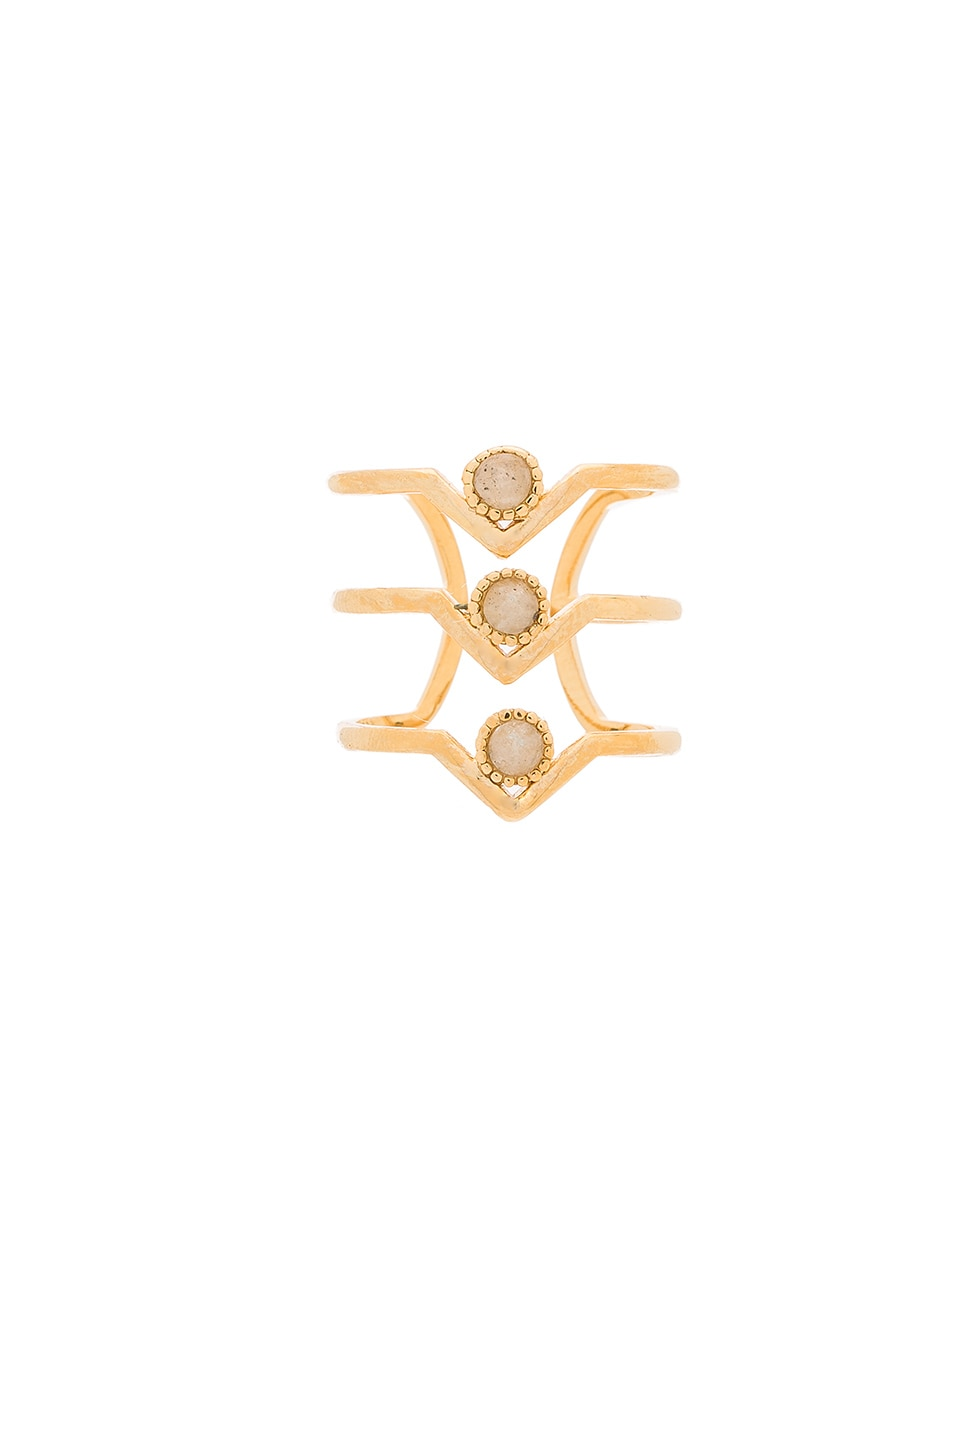 Wanderlust + Co Triple Zeta Ring in Gold & Slate